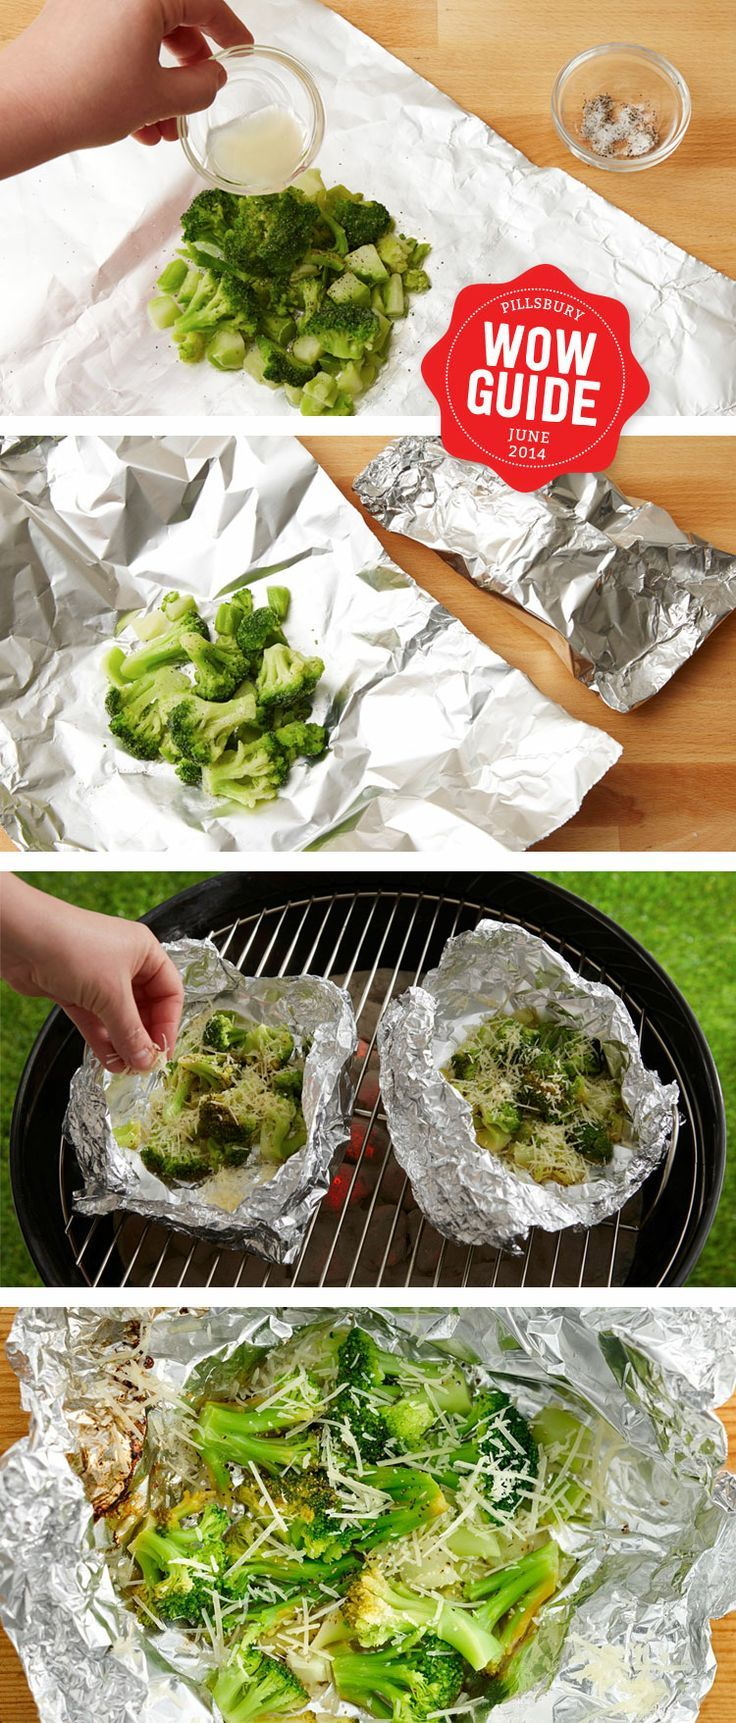 Broccoli Made On The Grill With Lemon And Parm  You'll Never Have Anything